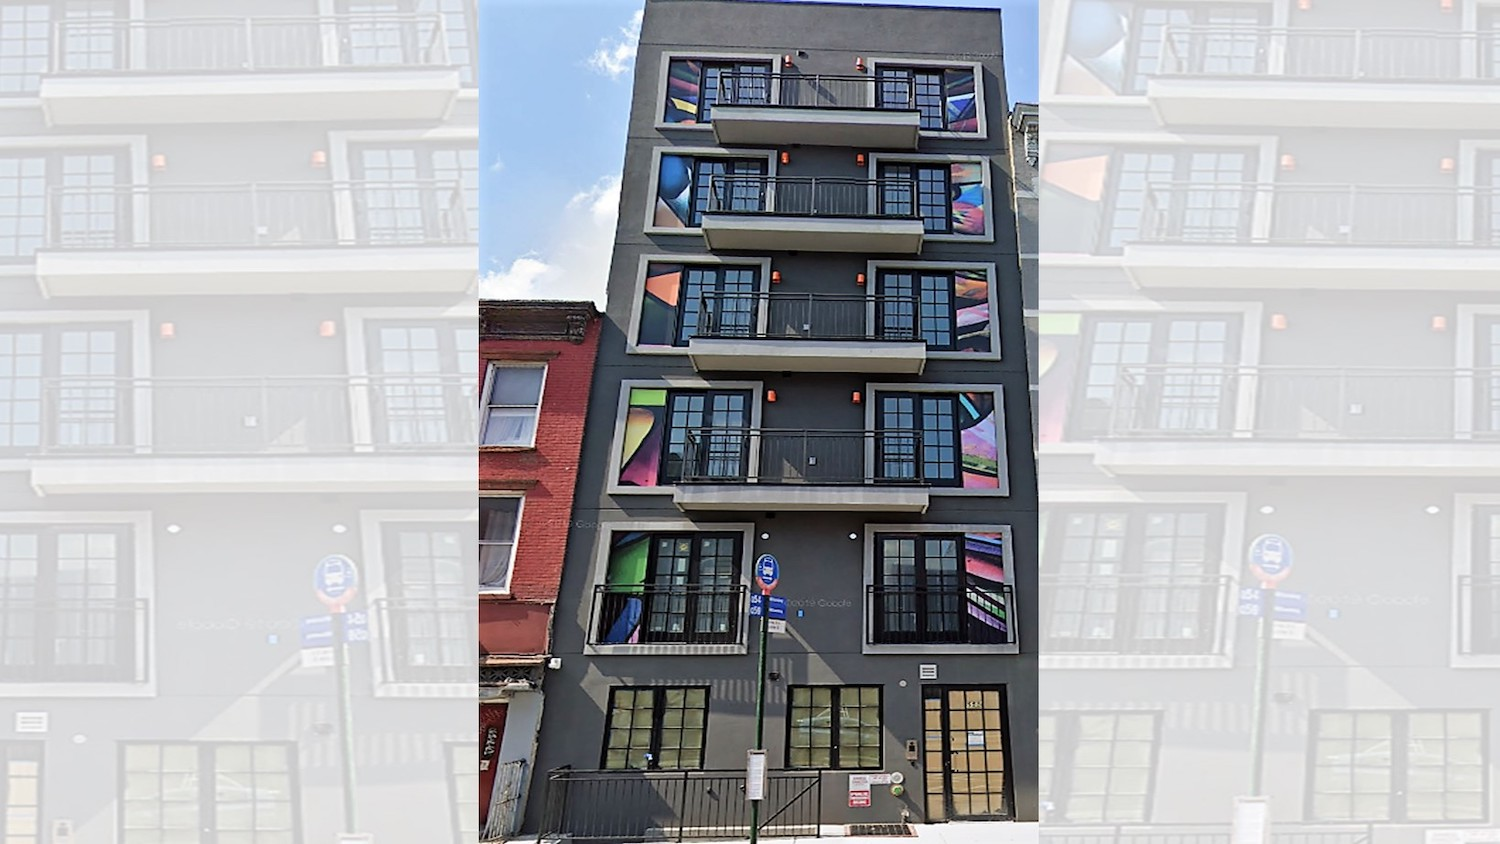 555 Grand Street in Williamsburg, Brooklyn. All images courtesy of NYC Housing Connect